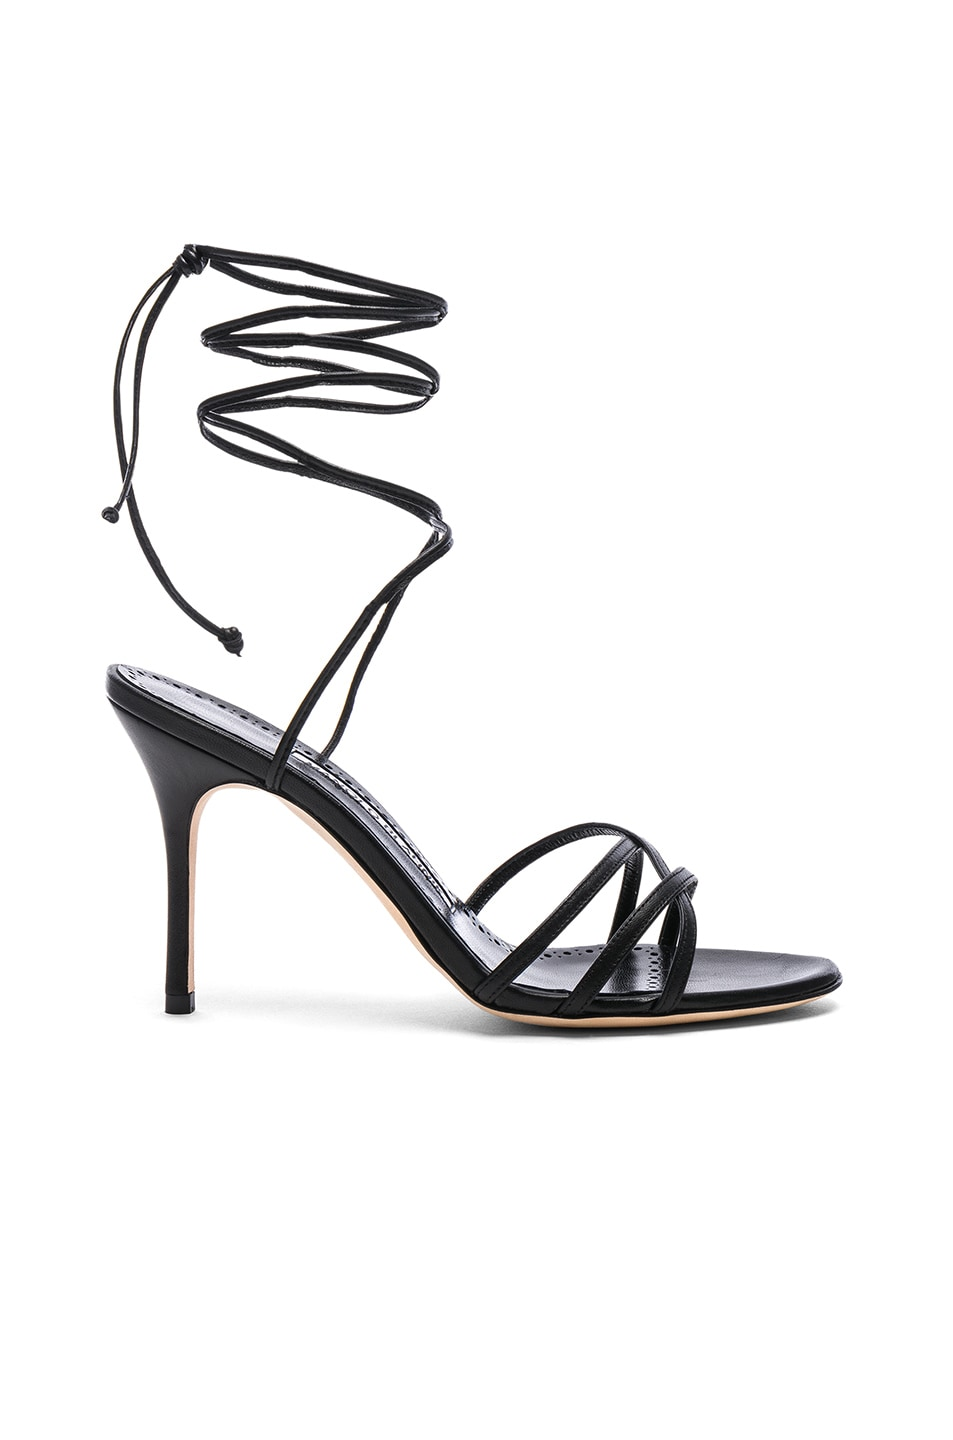 Image 1 of Manolo Blahnik Leather Leva 90 Sandals in Black Nappa